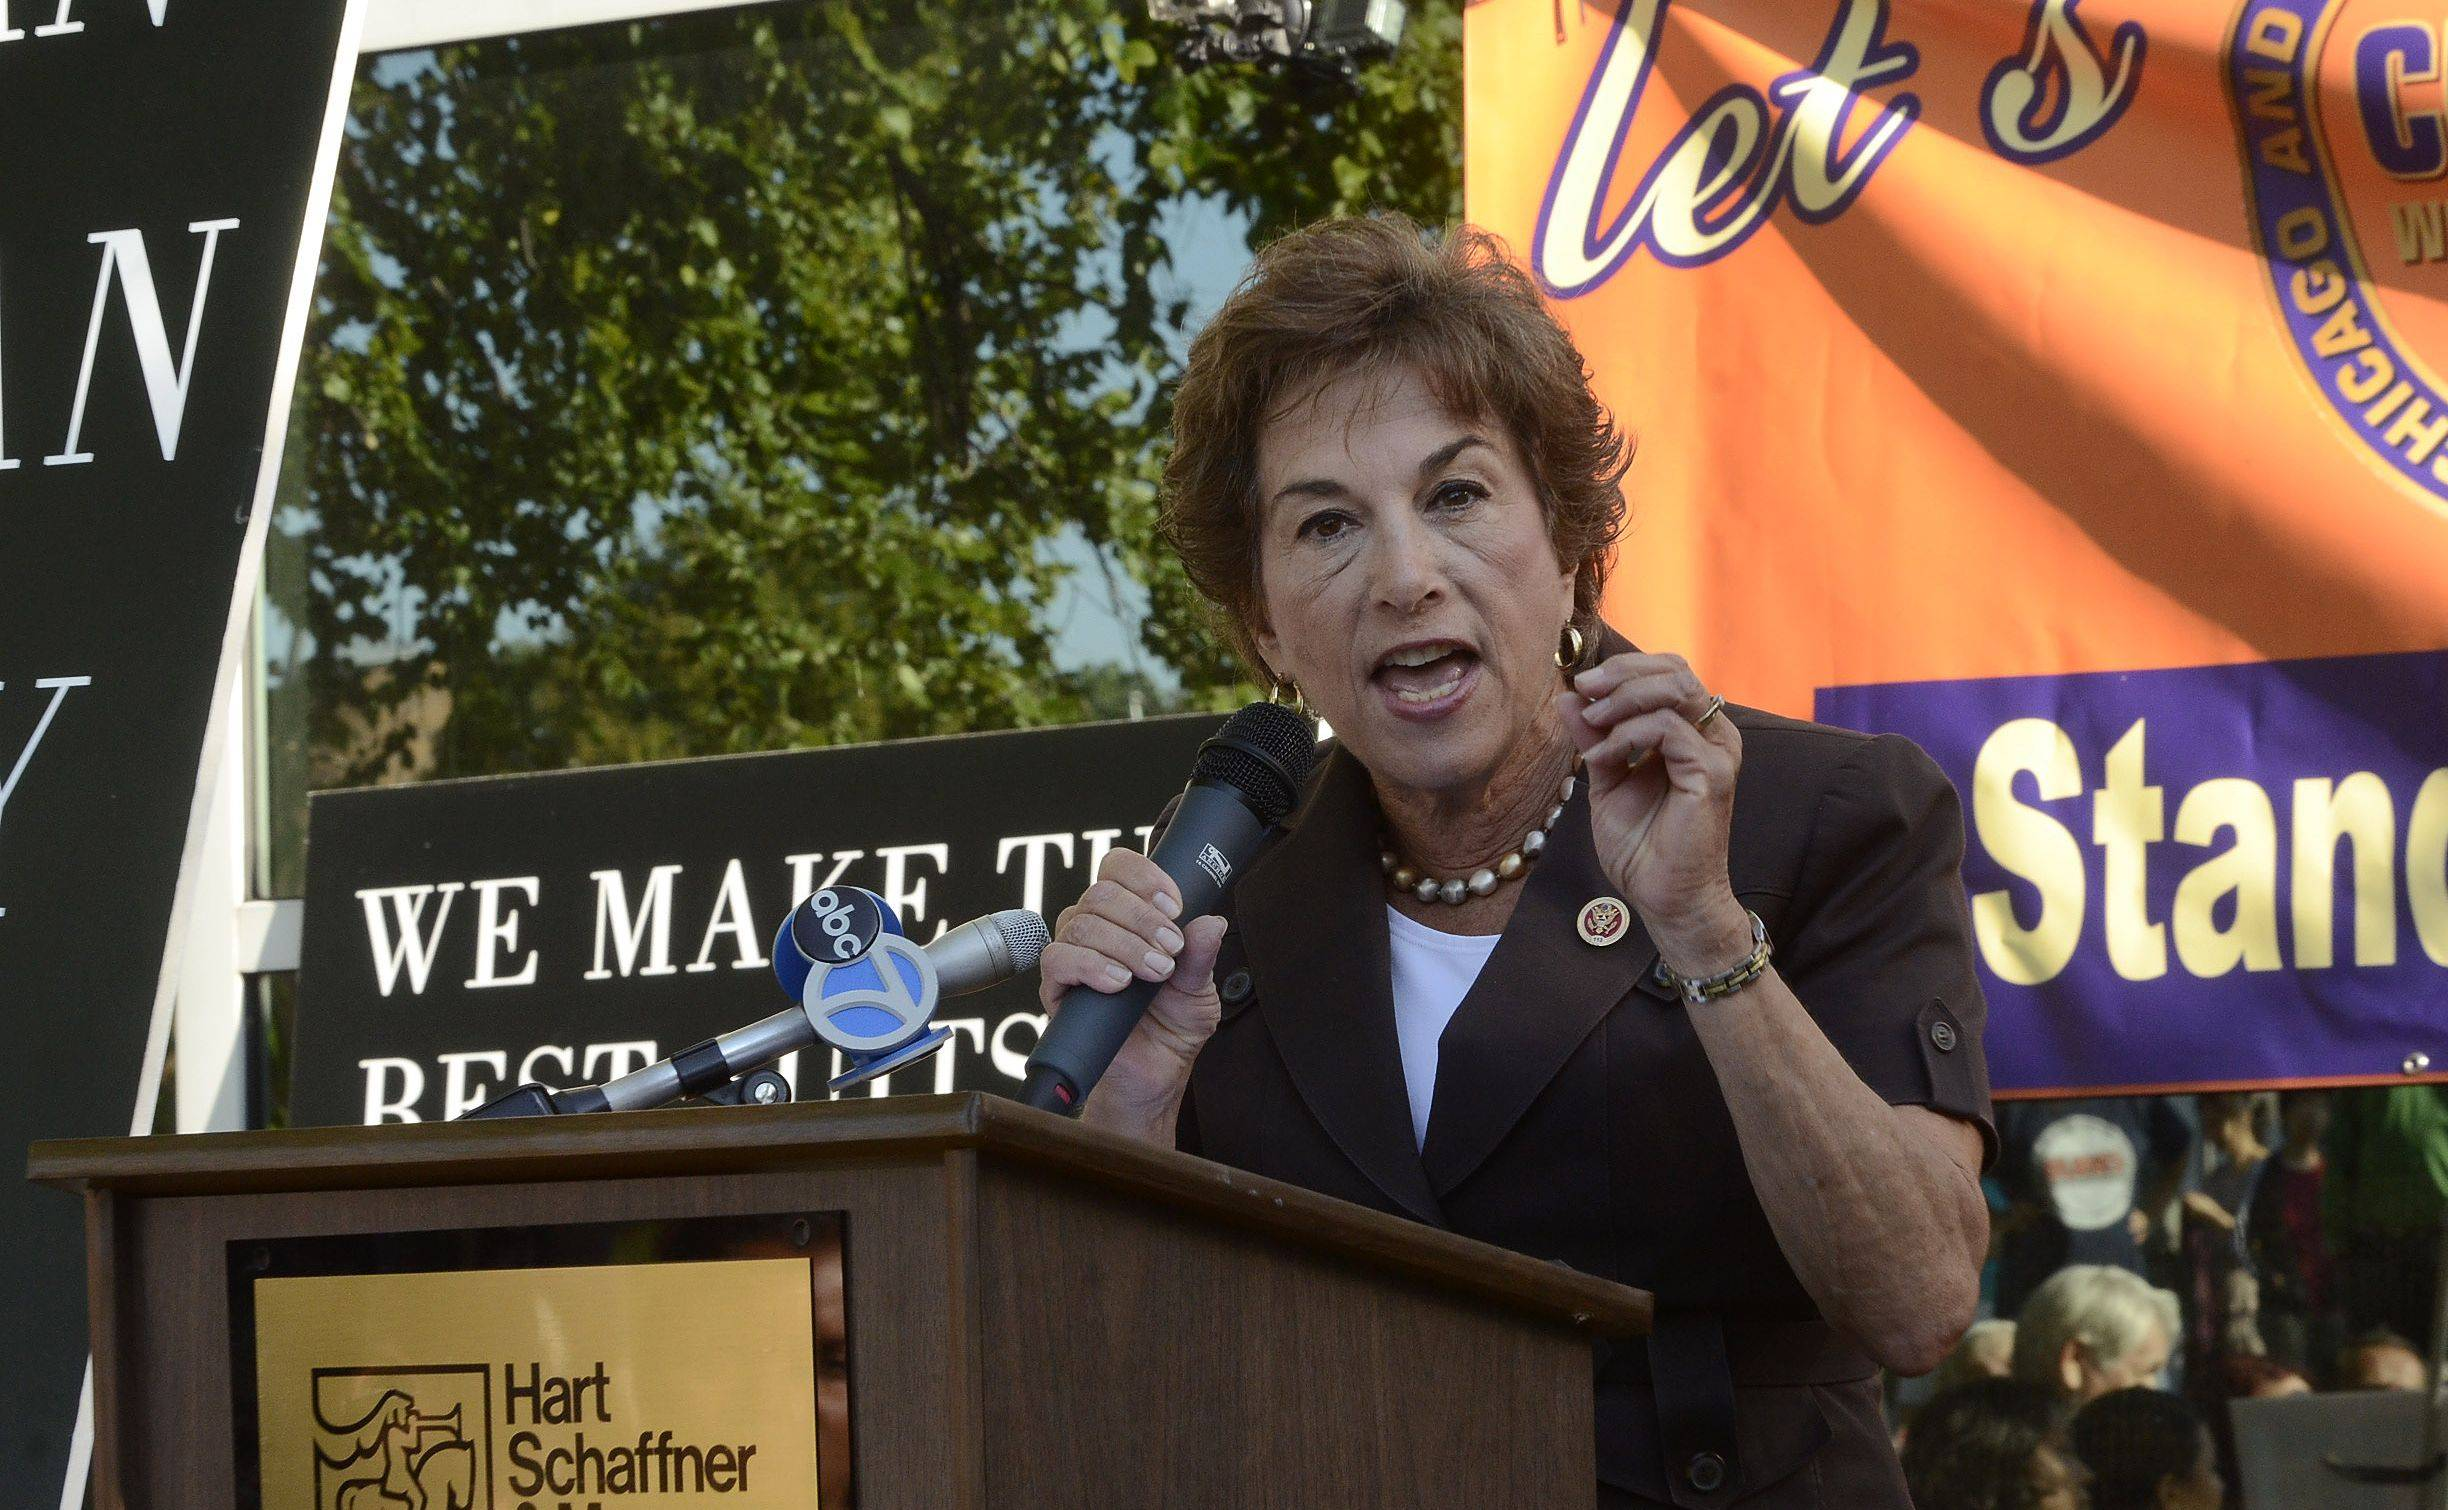 U.S. Rep. Jan Schakowsky speaks at a rally in front of the Hart Schaffner & Marx factory in Des Plaines, where workers protested the proposed Trans-Pacific Partnership free trade agreement.